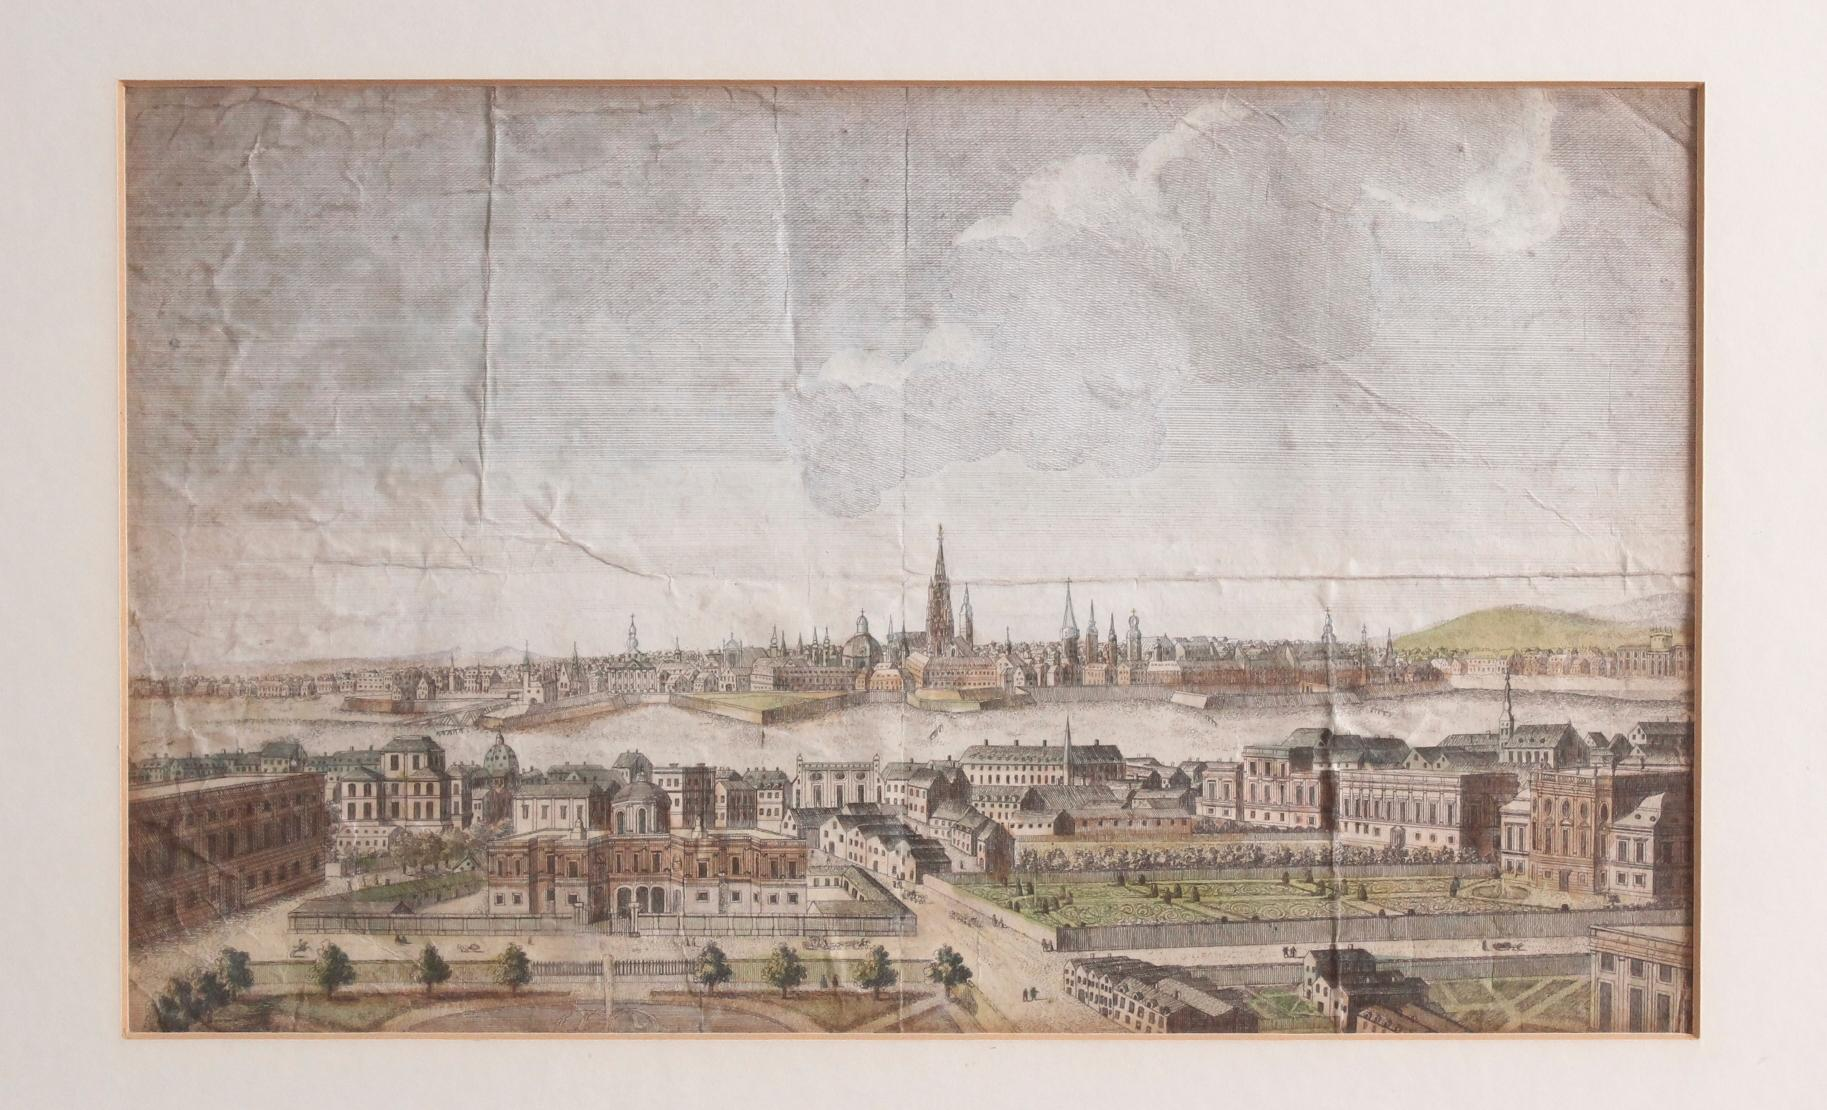 Kupferstich aus dem 18. Jh. A general view of the City of Vienna, anonymer Künstler-2